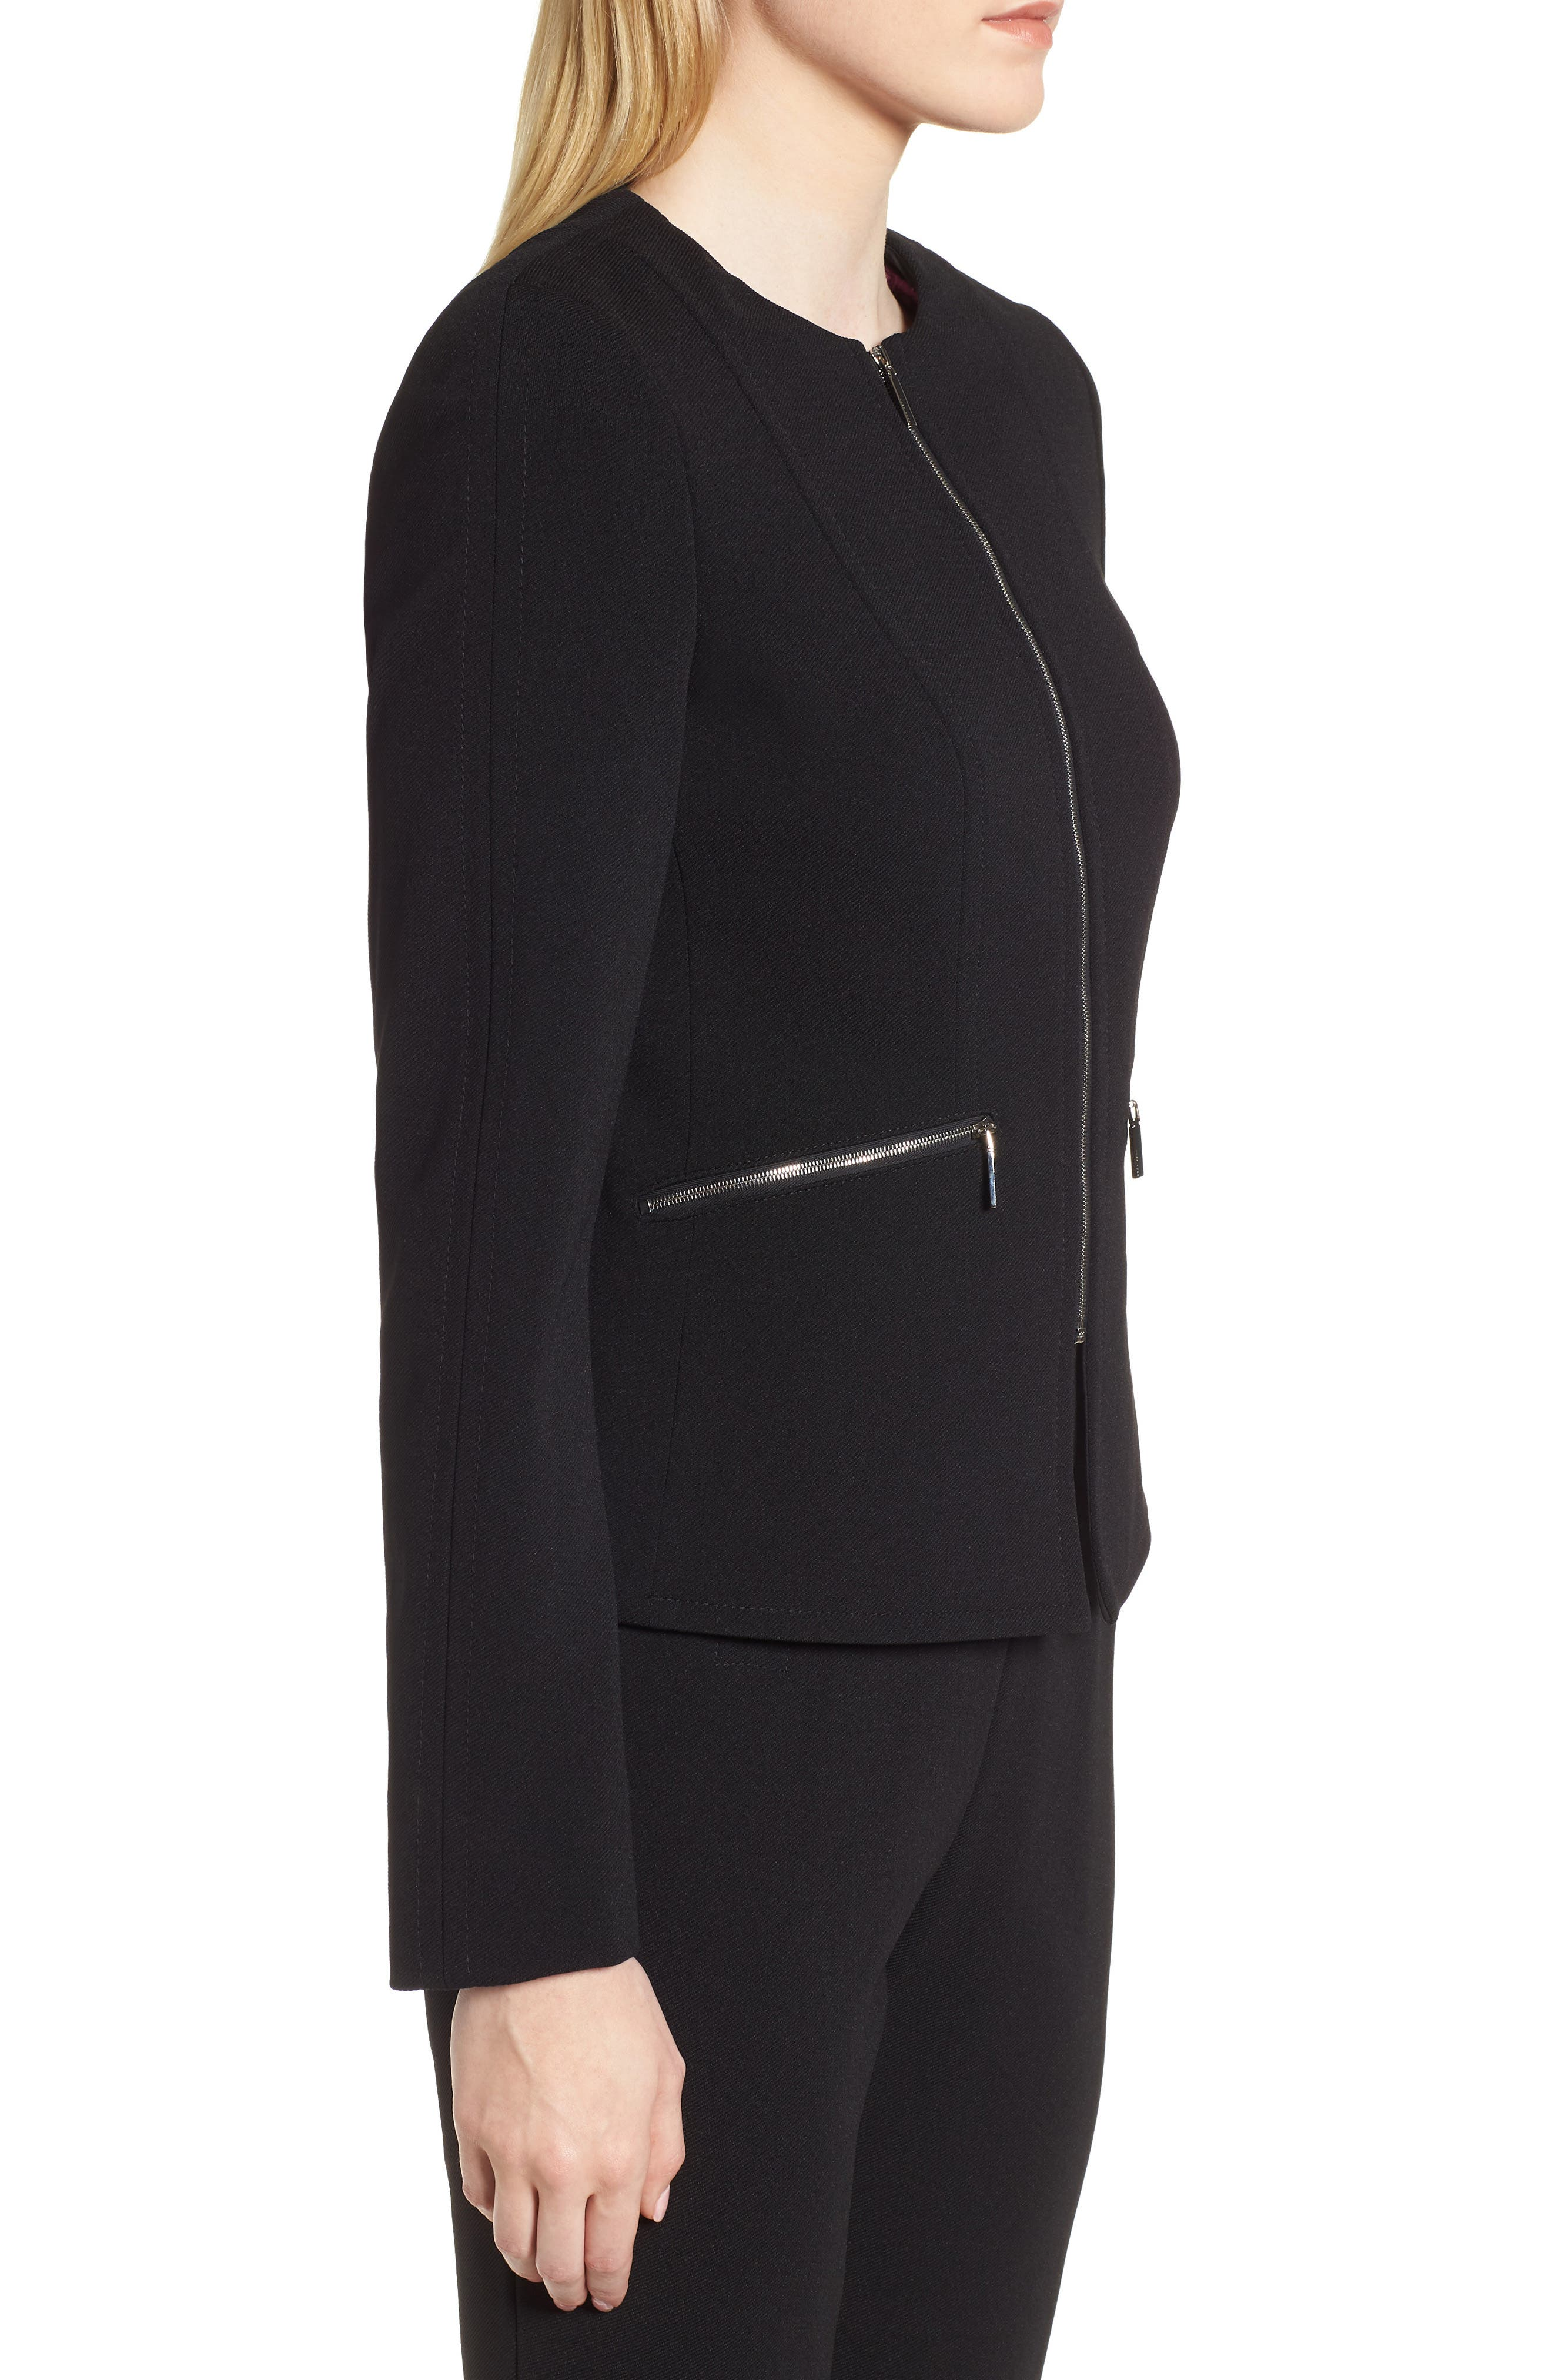 Jazulara Twill Jersey Suit Jacket,                             Alternate thumbnail 3, color,                             Black